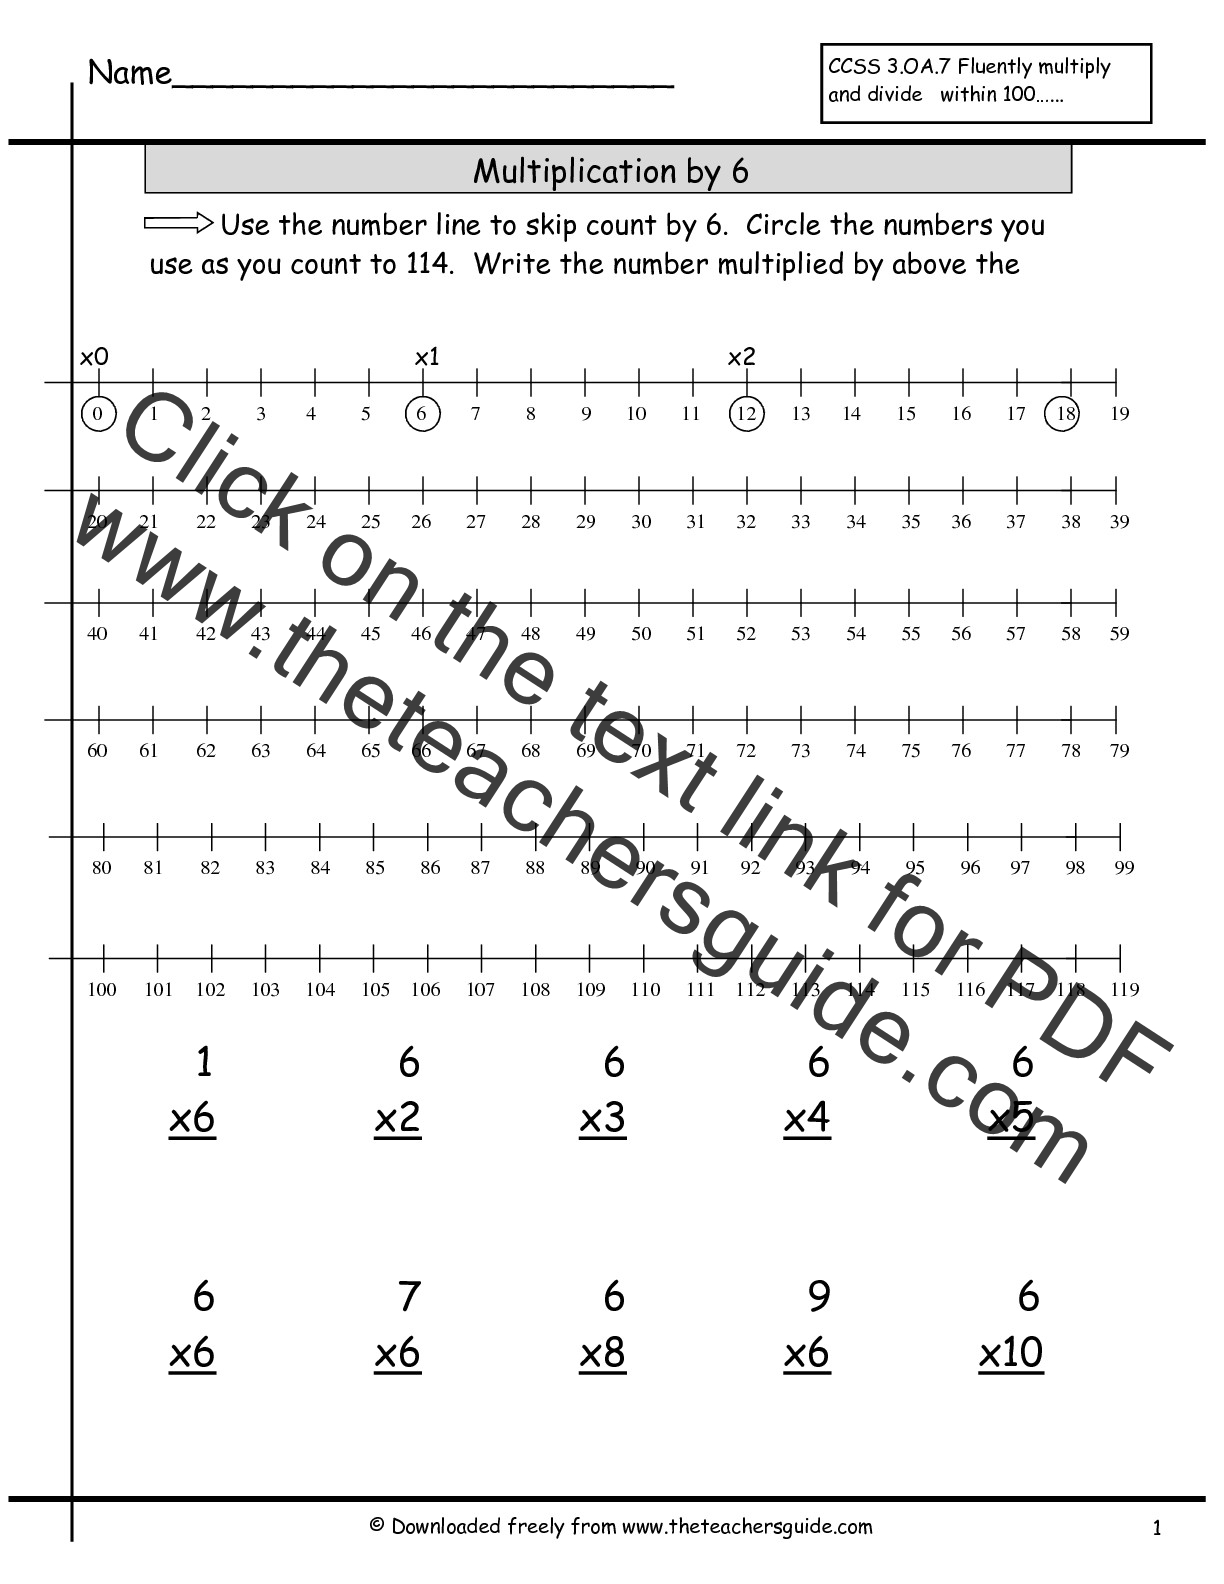 Multiplication Facts Worksheets From The Teacher 39 S Guide